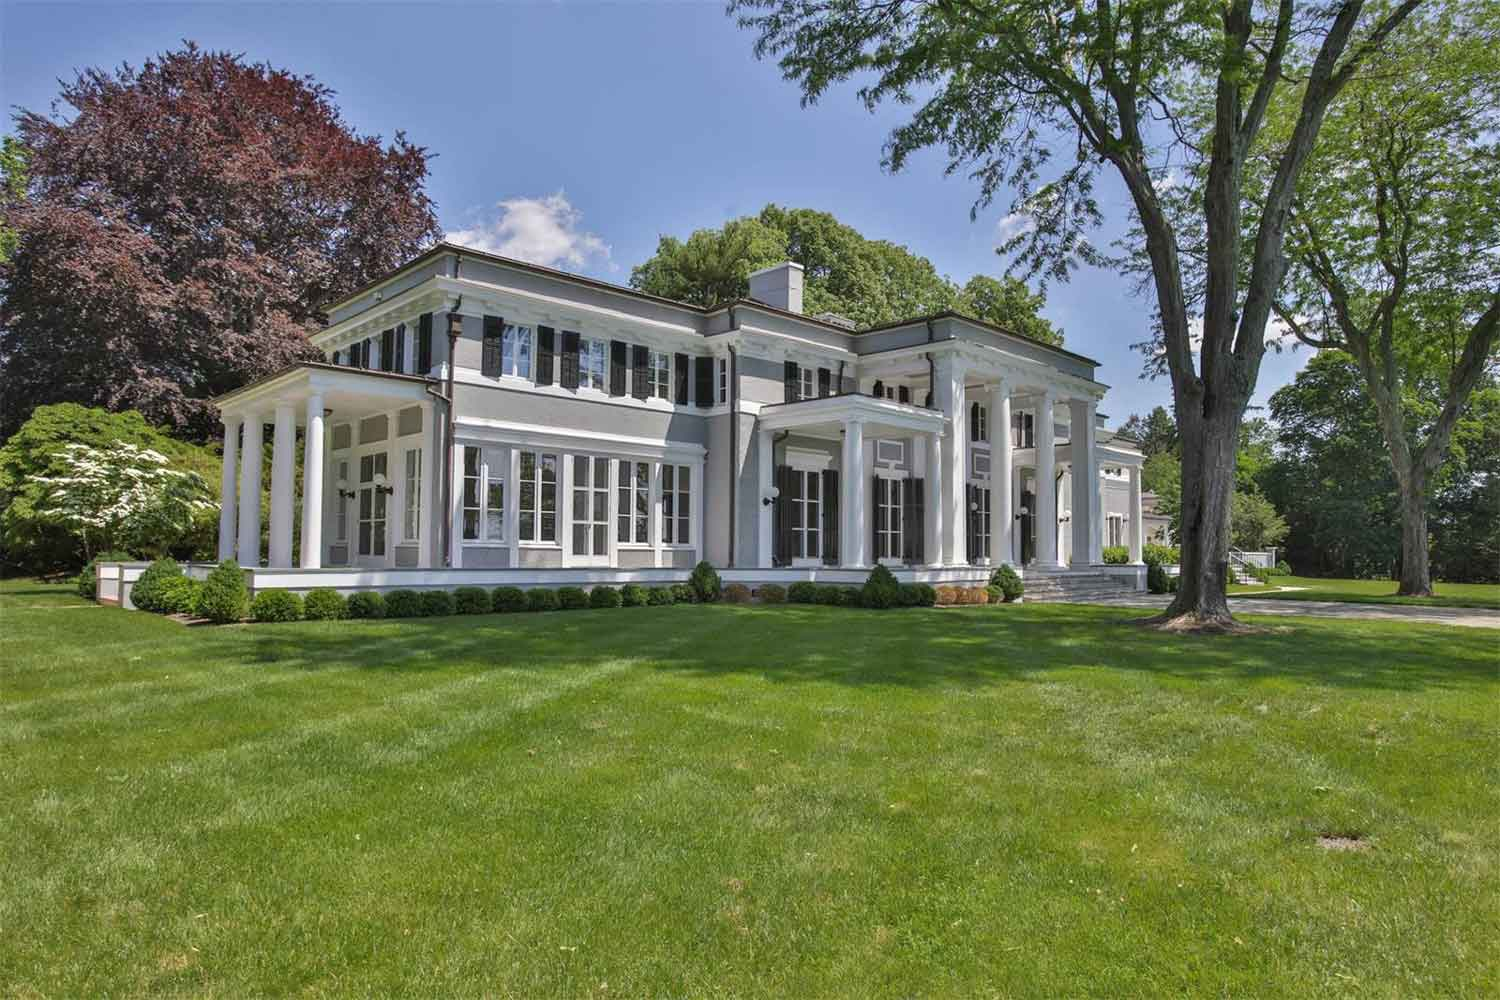 <b>Middletown, New Jersey</b><br/><i>8 Bedrooms, 7,600 sq. ft.</i><br/>Navesink River Estate